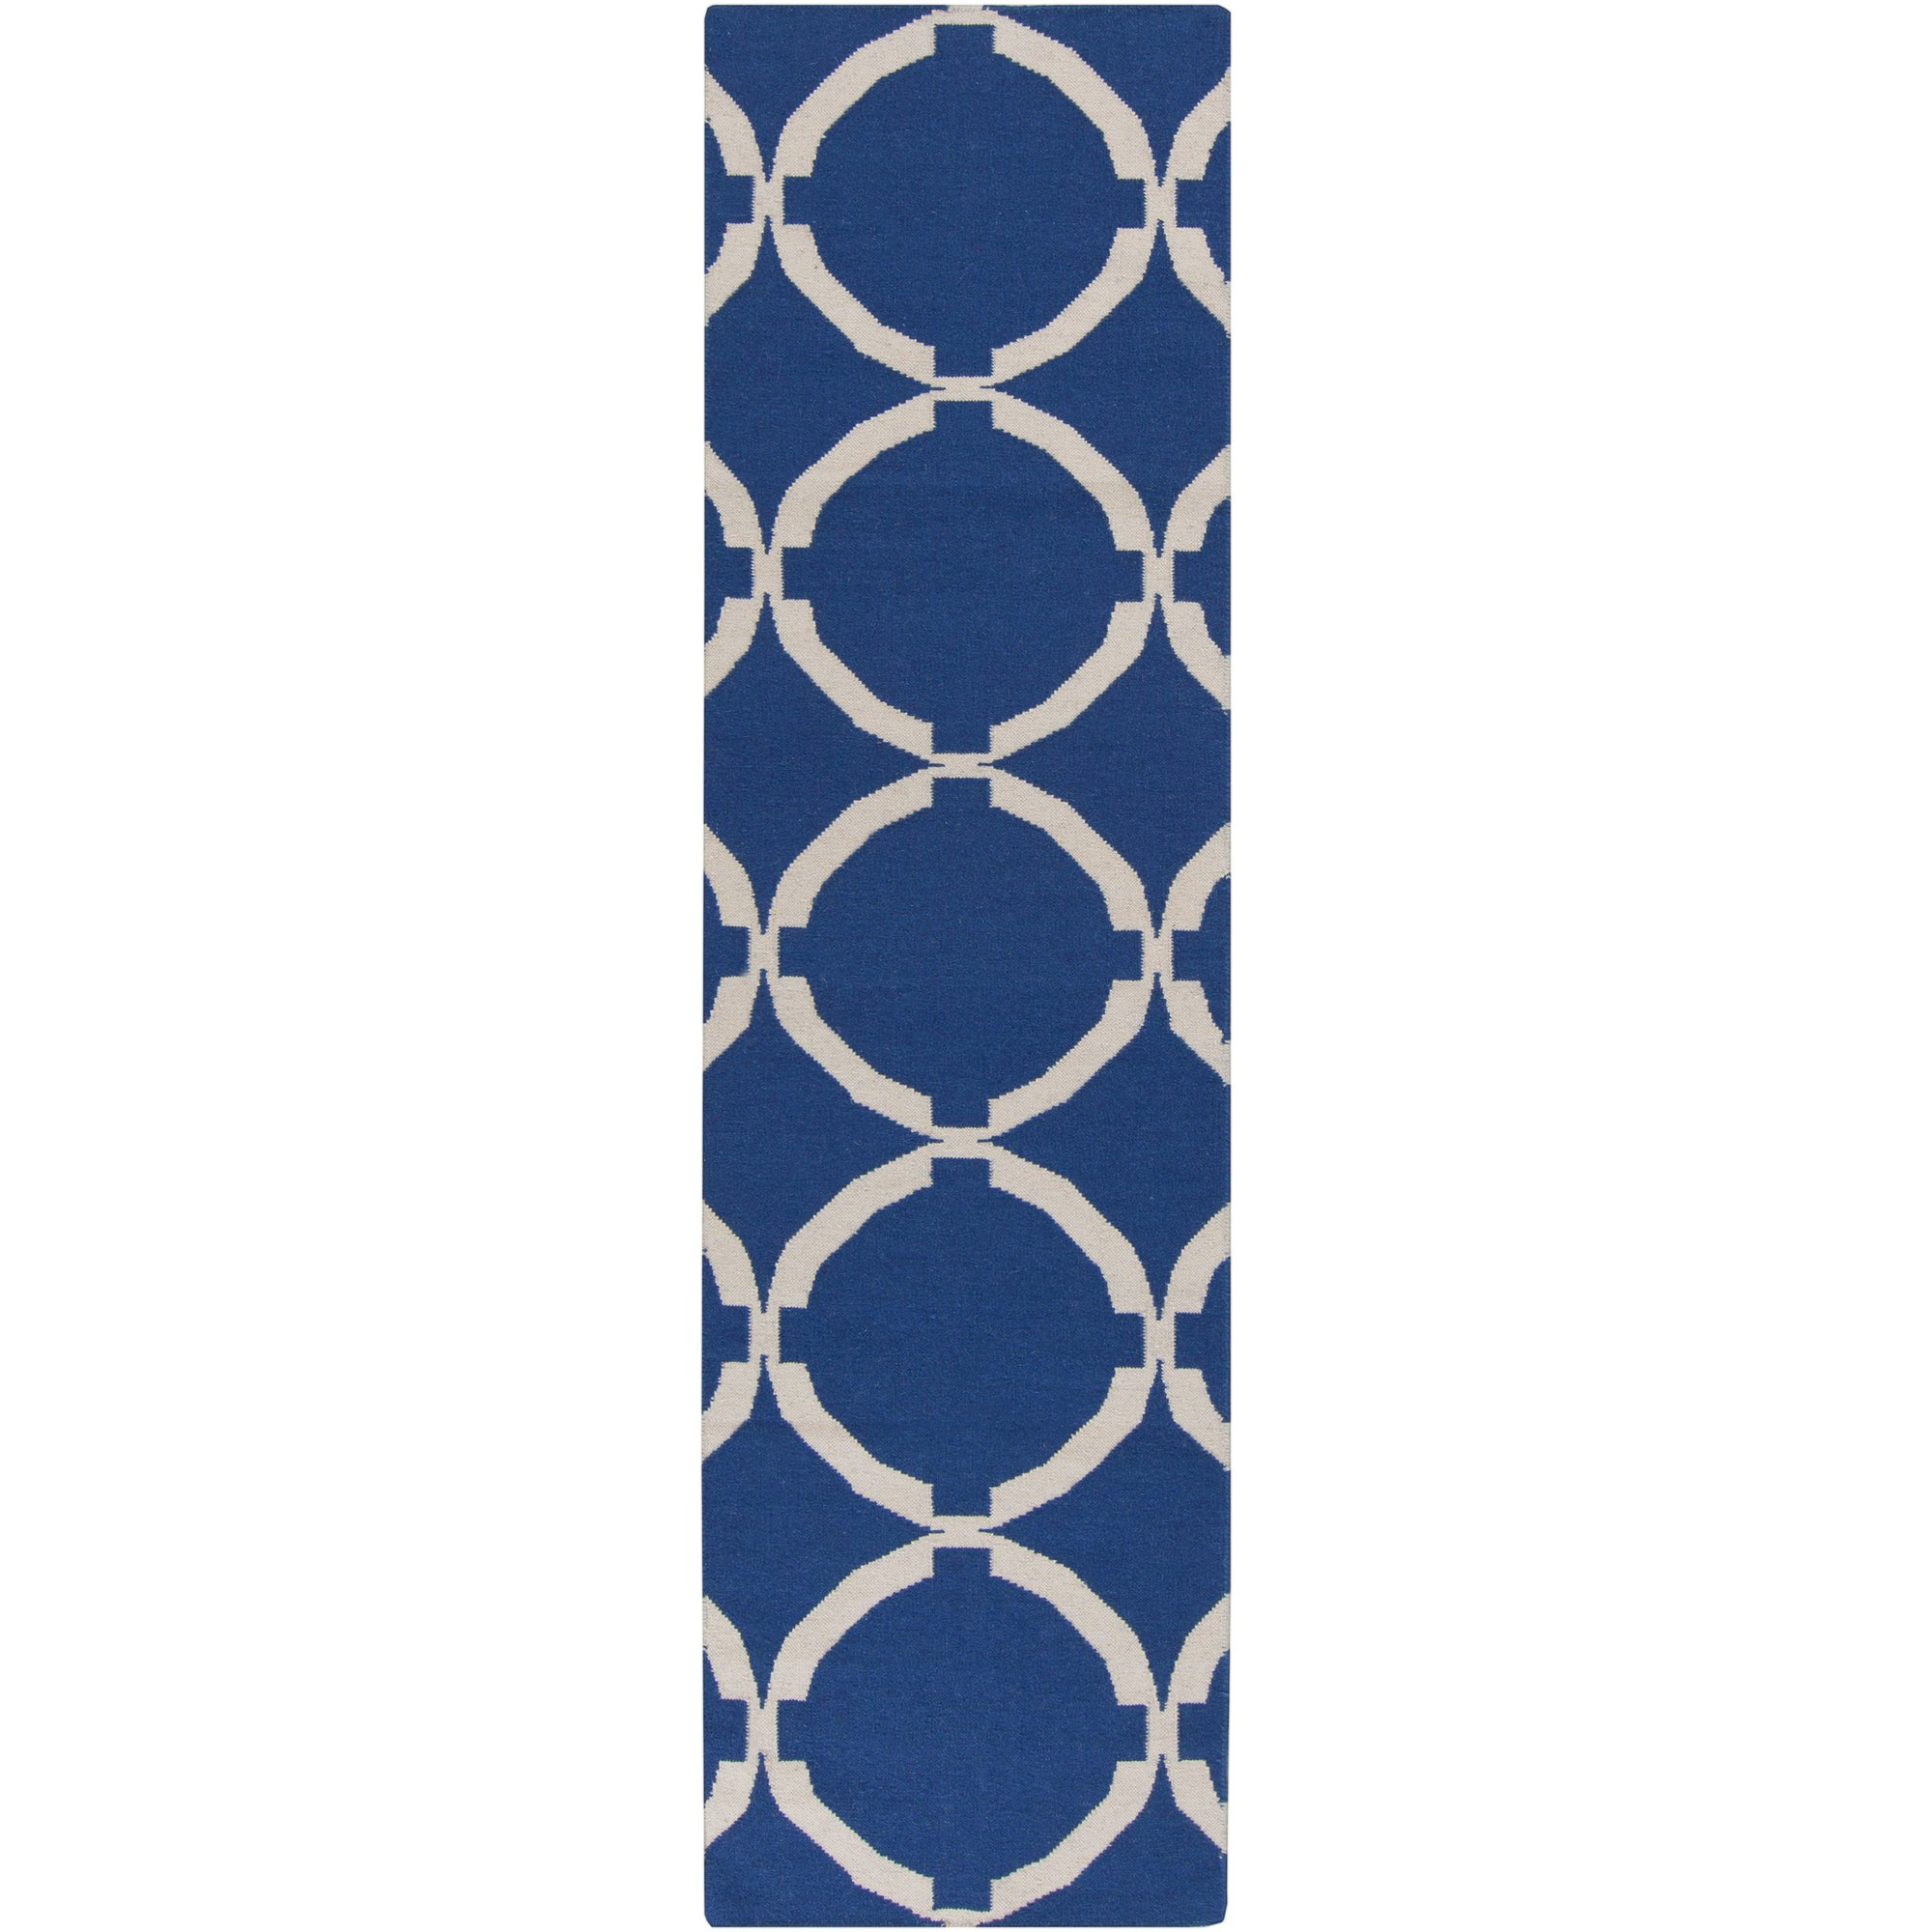 Surya FT521-268 Hand Woven Geometric Runners, 2-Feet 6-Inch by 8-Feet, Navy/Ivory